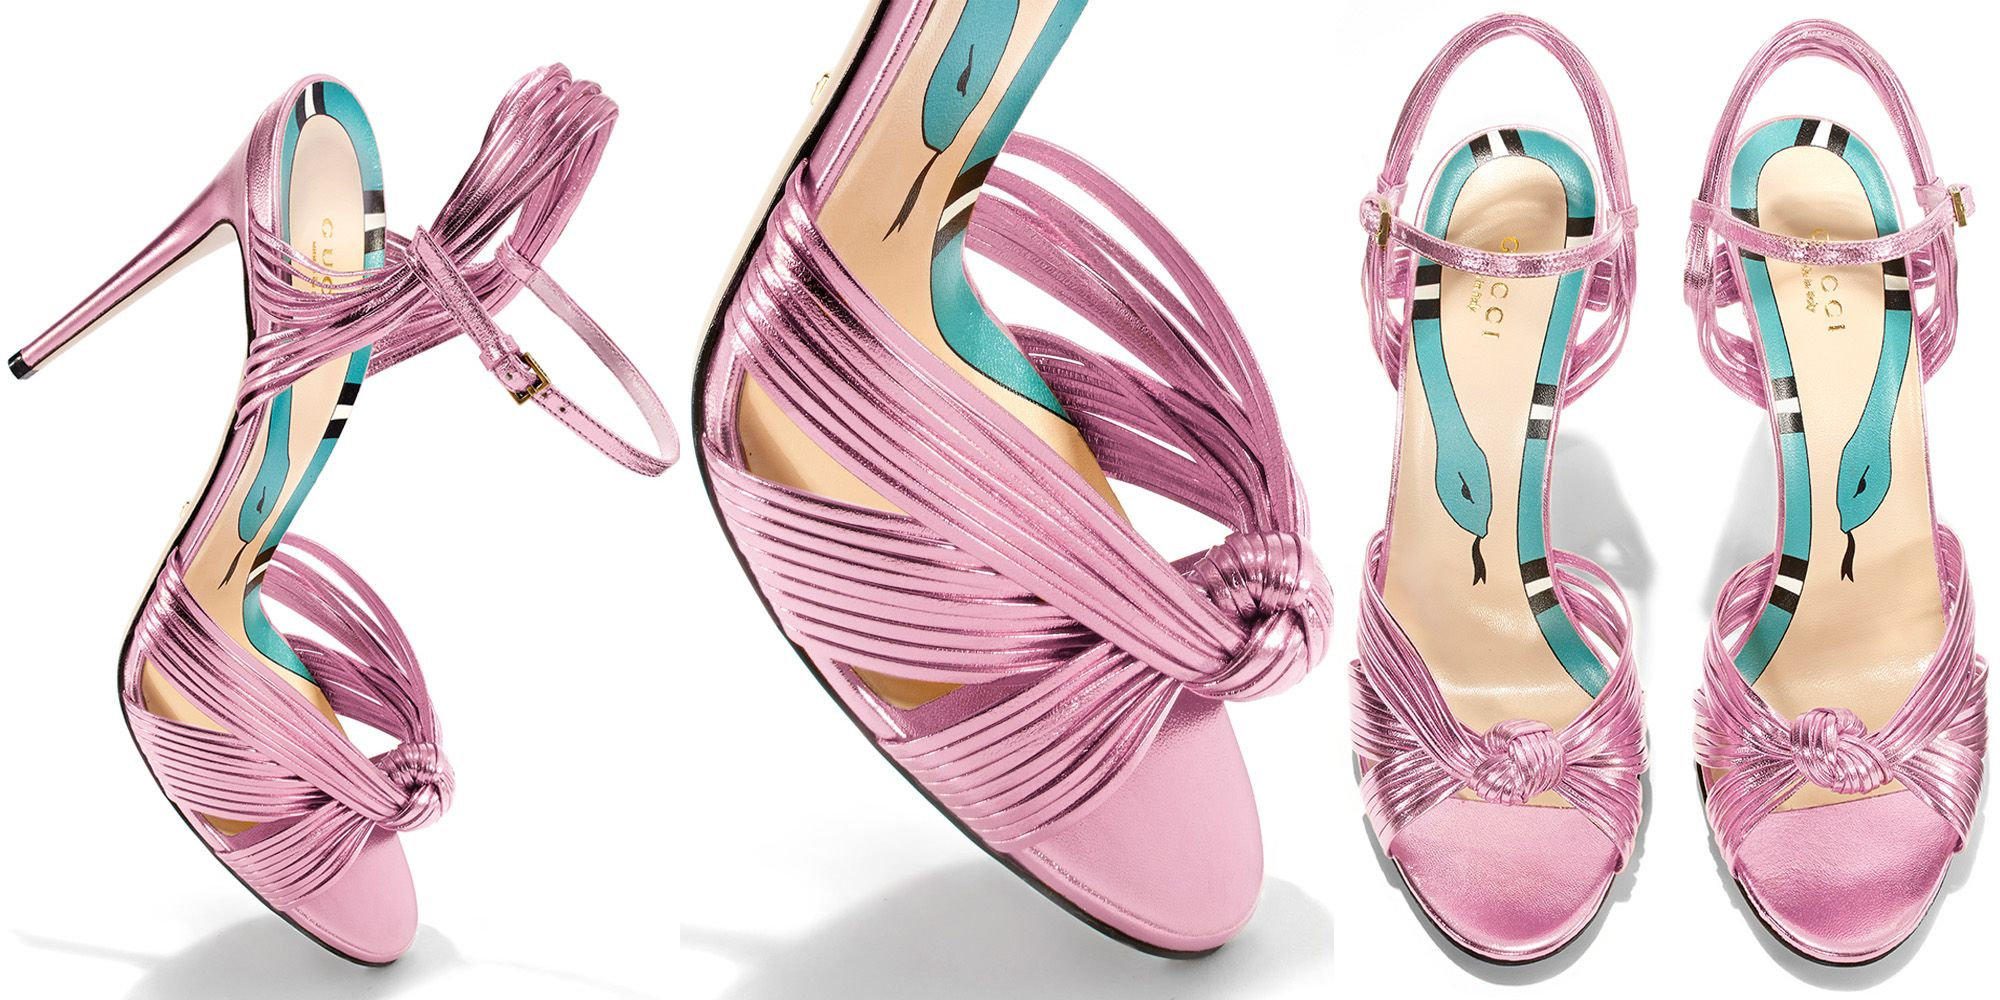 """<p>""""Alessandro Michele has a gift for romance. This Gucci heel—in the prettiest, metallic pink —offers a modern take on femininity. I love that it feels at once classic and cool.""""—<span class=""""redactor-invisible-space"""" data-redactor-tag=""""span"""" data-redactor-class=""""redactor-invisible-space"""" data-verified=""""redactor""""><strong data-redactor-tag=""""strong"""">Nicole Fritton, Fashion Market & Accessories Director, on her Hero pick</strong></span><span class=""""redactor-invisible-space"""" data-verified=""""redactor"""" data-redactor-tag=""""span"""" data-redactor-class=""""redactor-invisible-space""""></span></p>"""